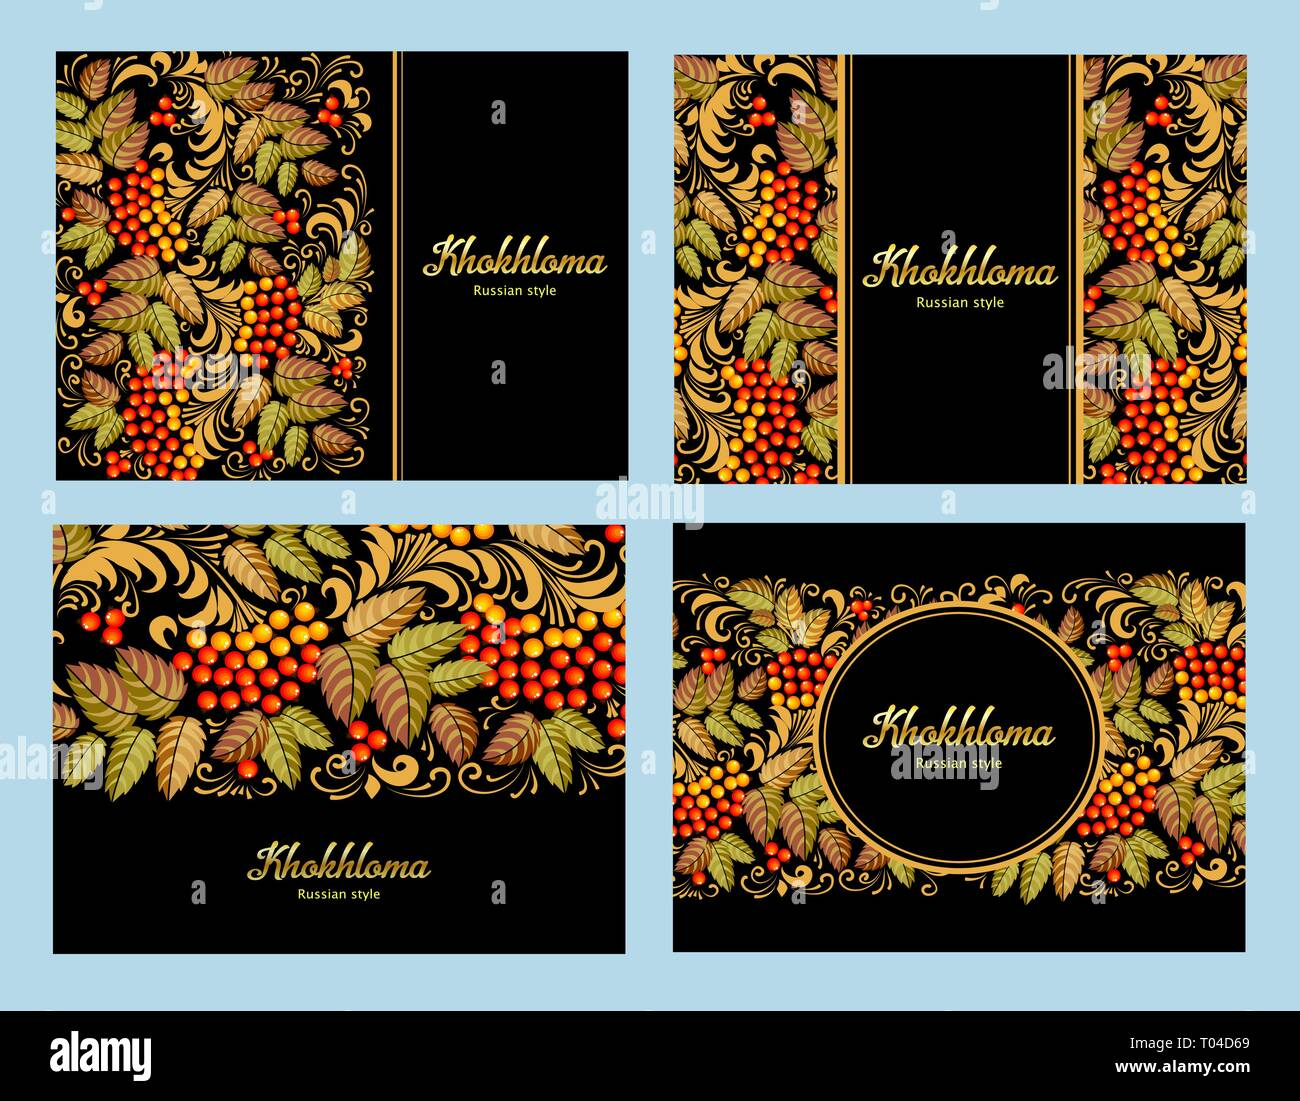 Russian Khokhloma Painting Russian Style Decoration And Design Element Vector Graphics Banners With